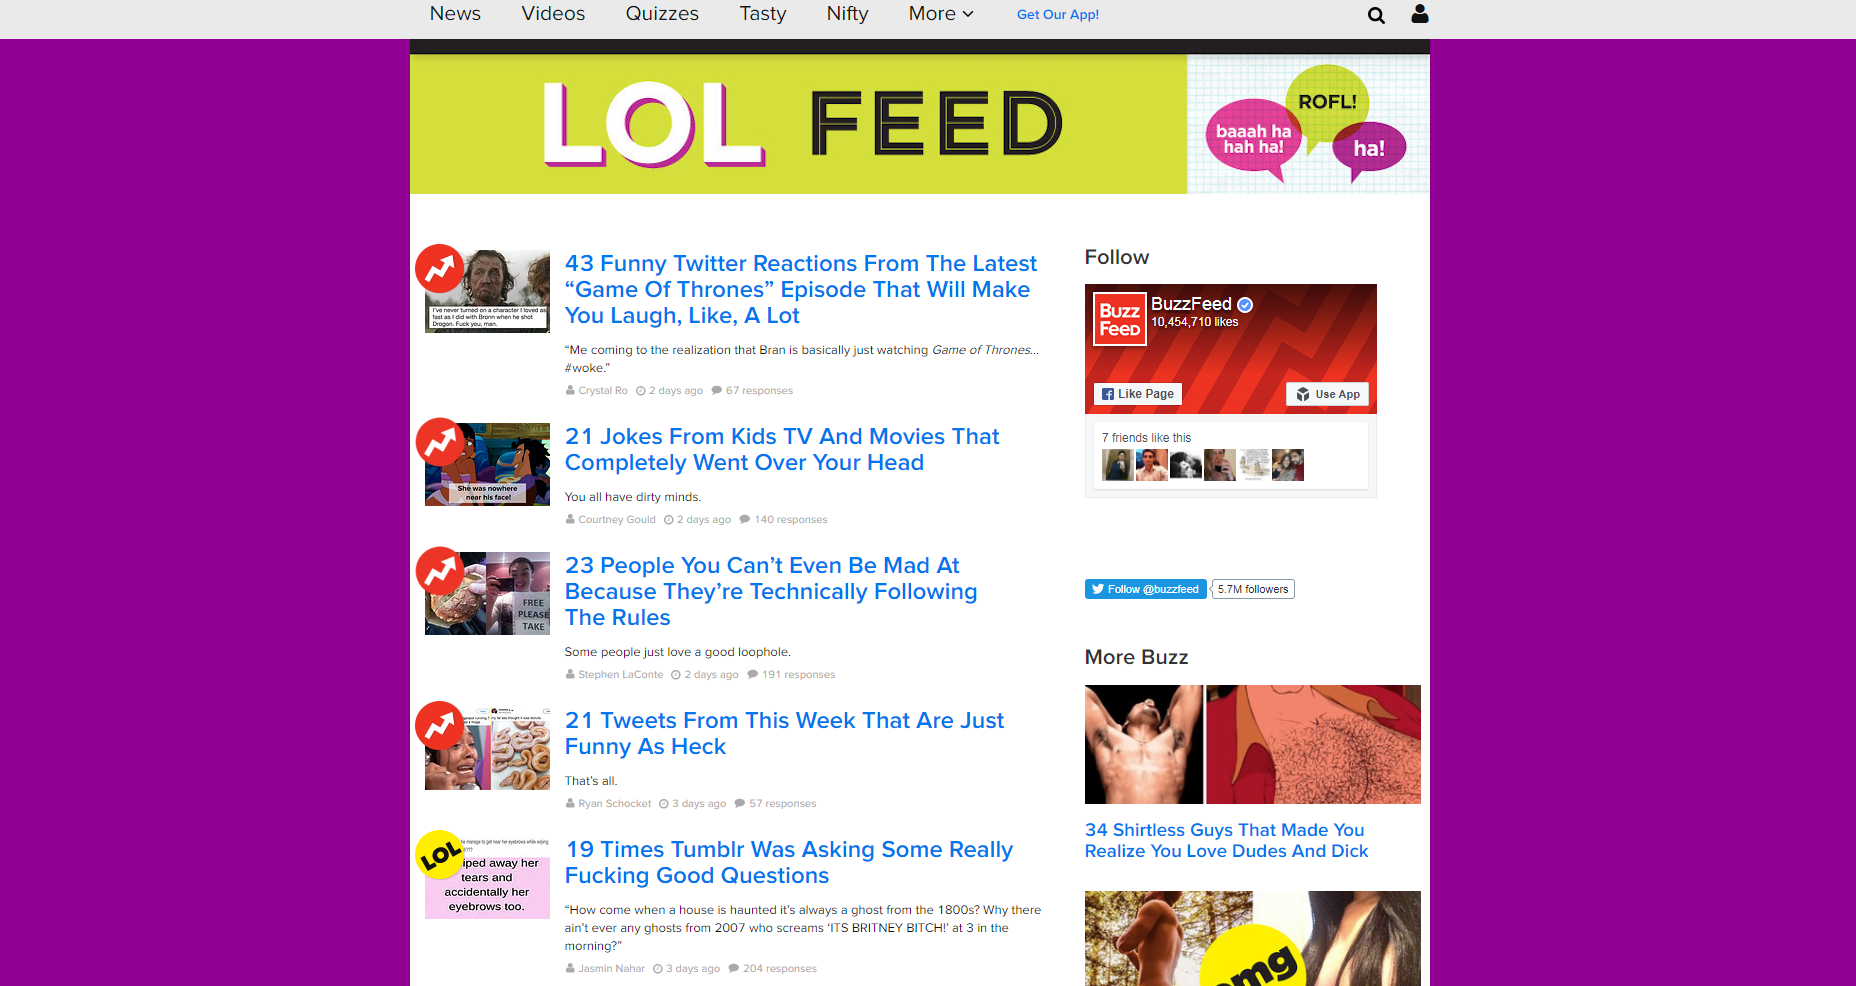 BuzzFeed See whats entertaining - 6 Tips to Transform Viral Issues Into Ridiculously Hot Posts